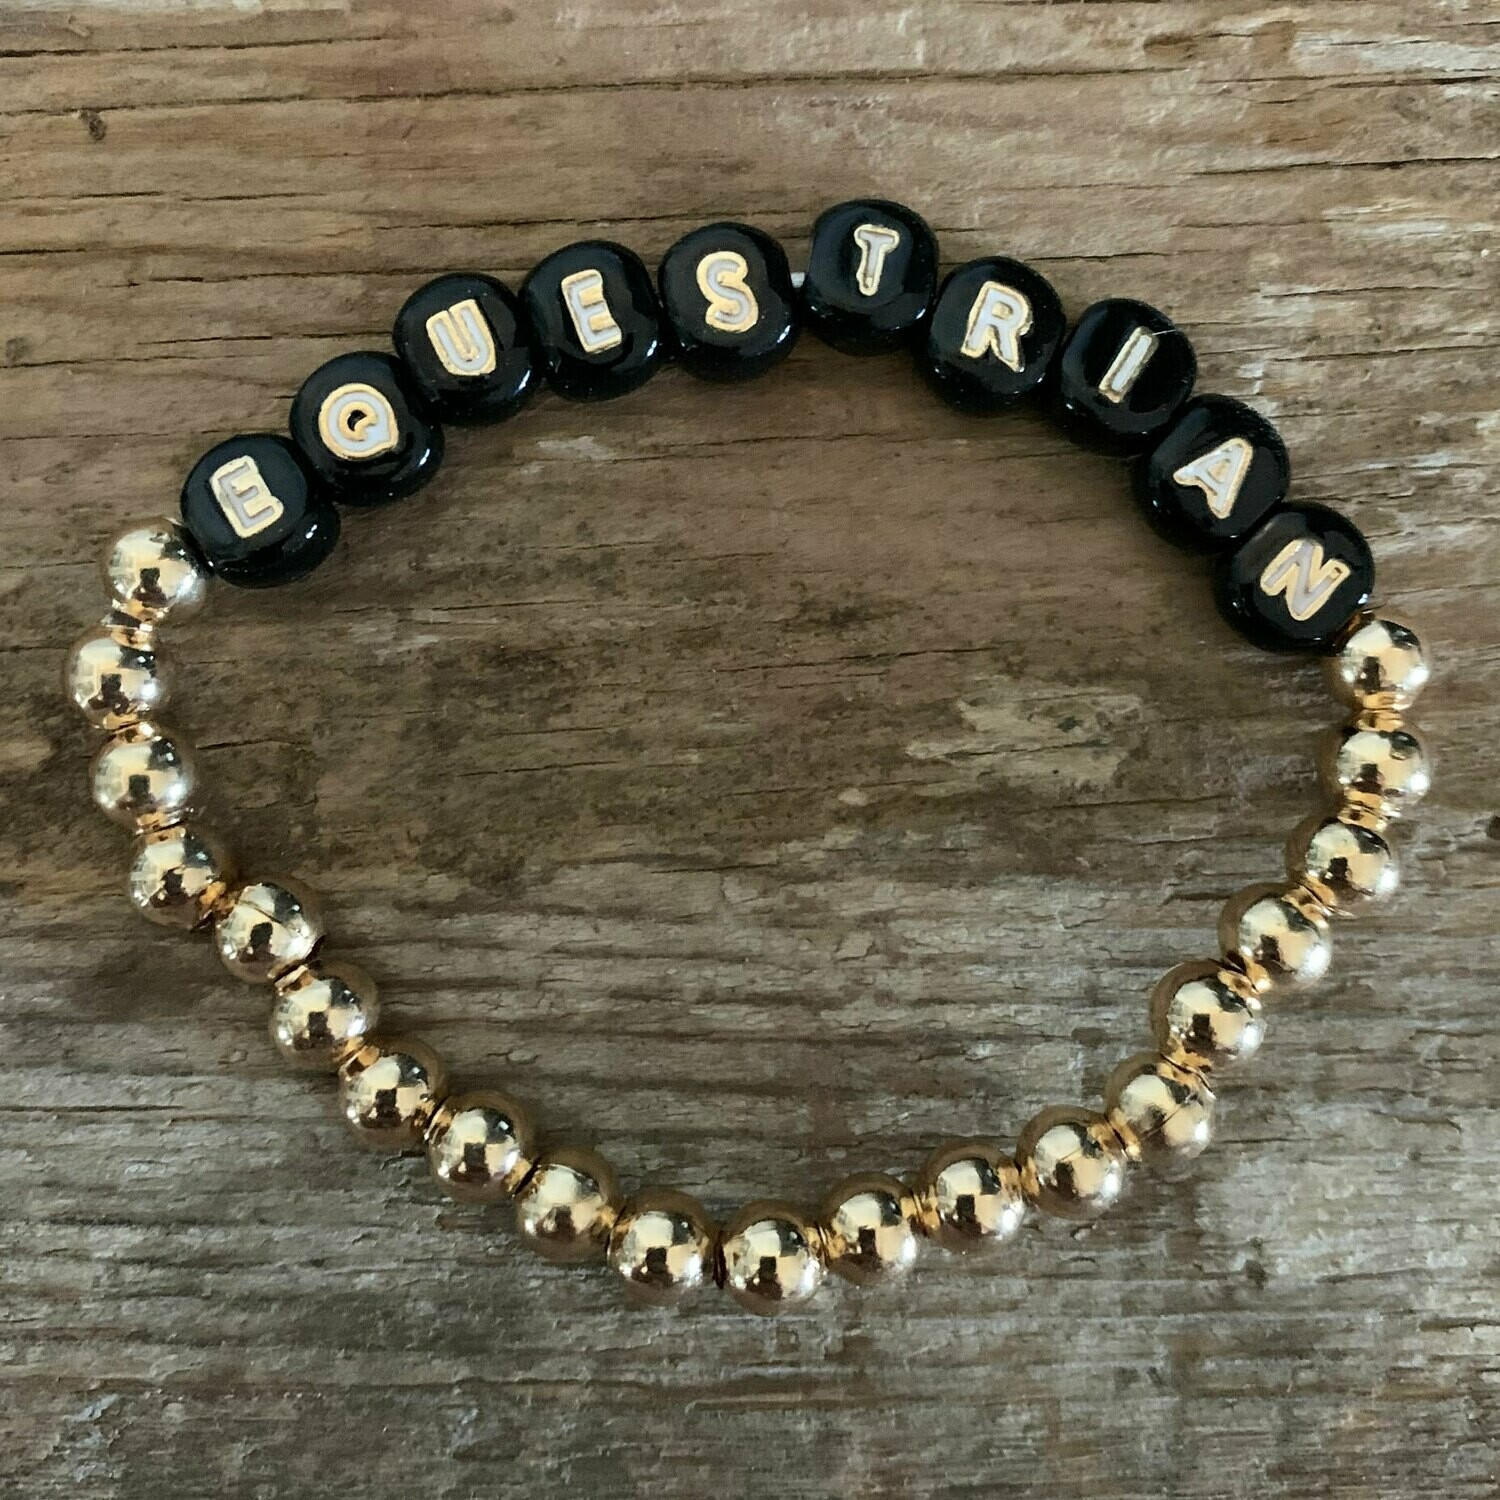 Black and White Equestrian Gold Bead Stretch Bracelet